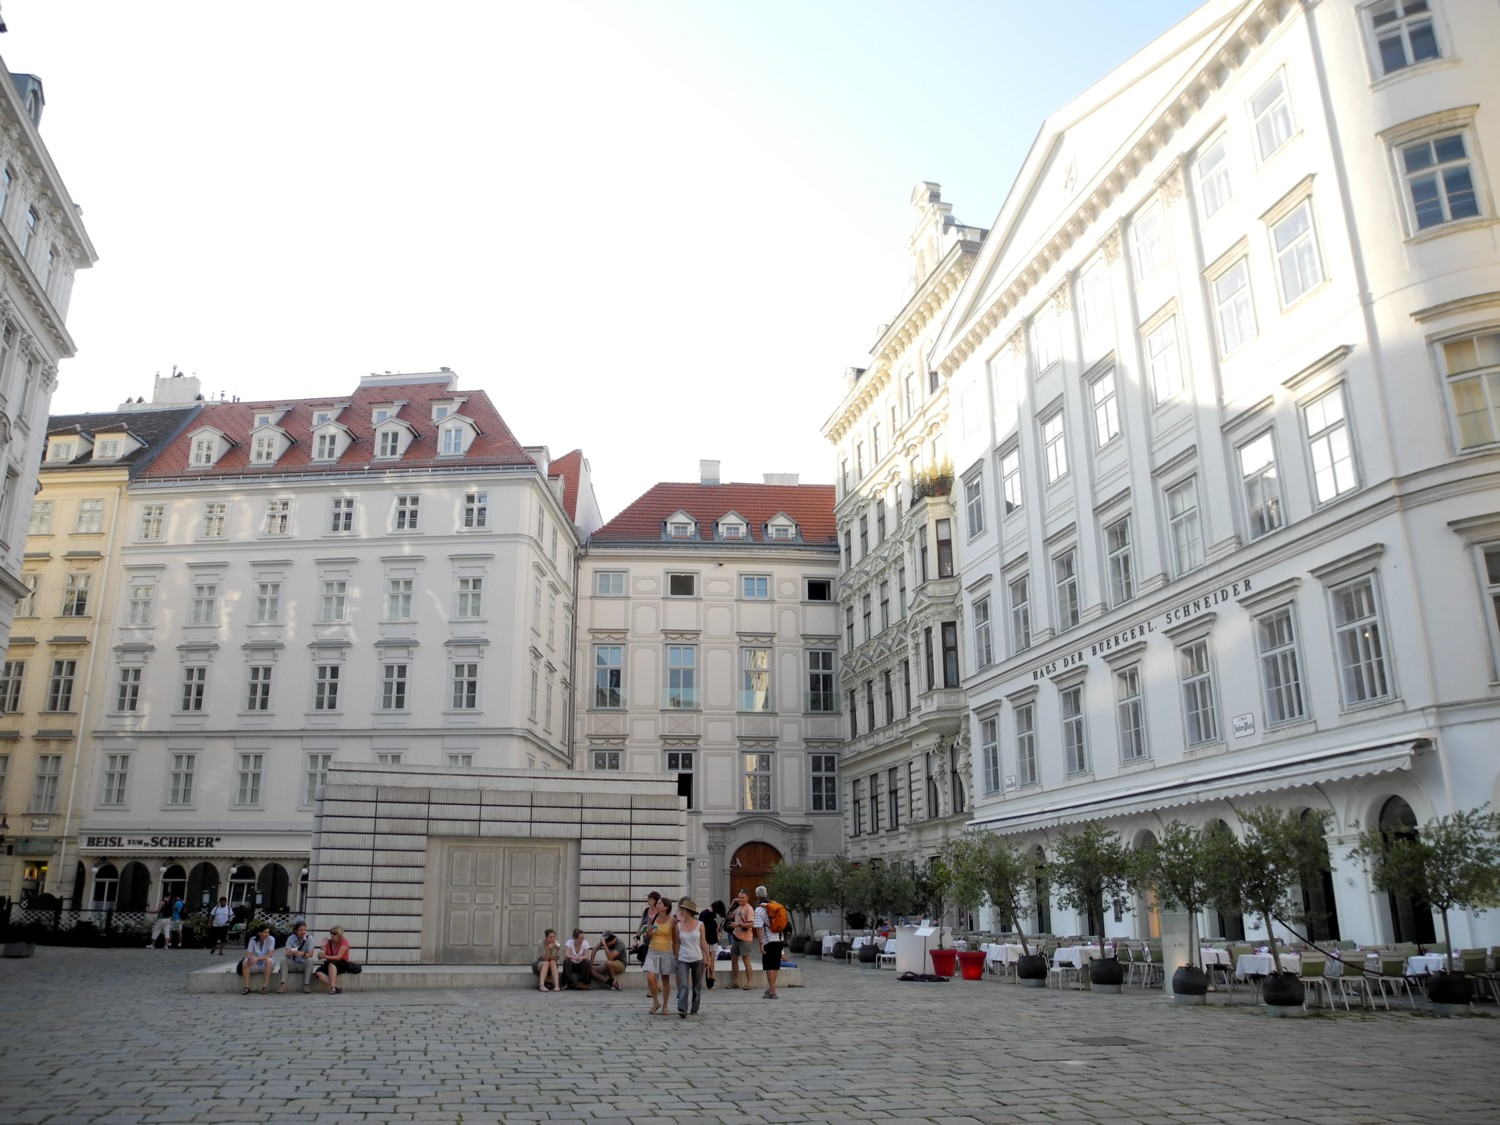 Judenplatz, the historic Jewish Quarter of Vienna, Austria, has a museum, an archeological excavation of a Medieval synagogue, and Holocaust memorial. © 2016 Karen Rubin/goingplacesfarandnear.com